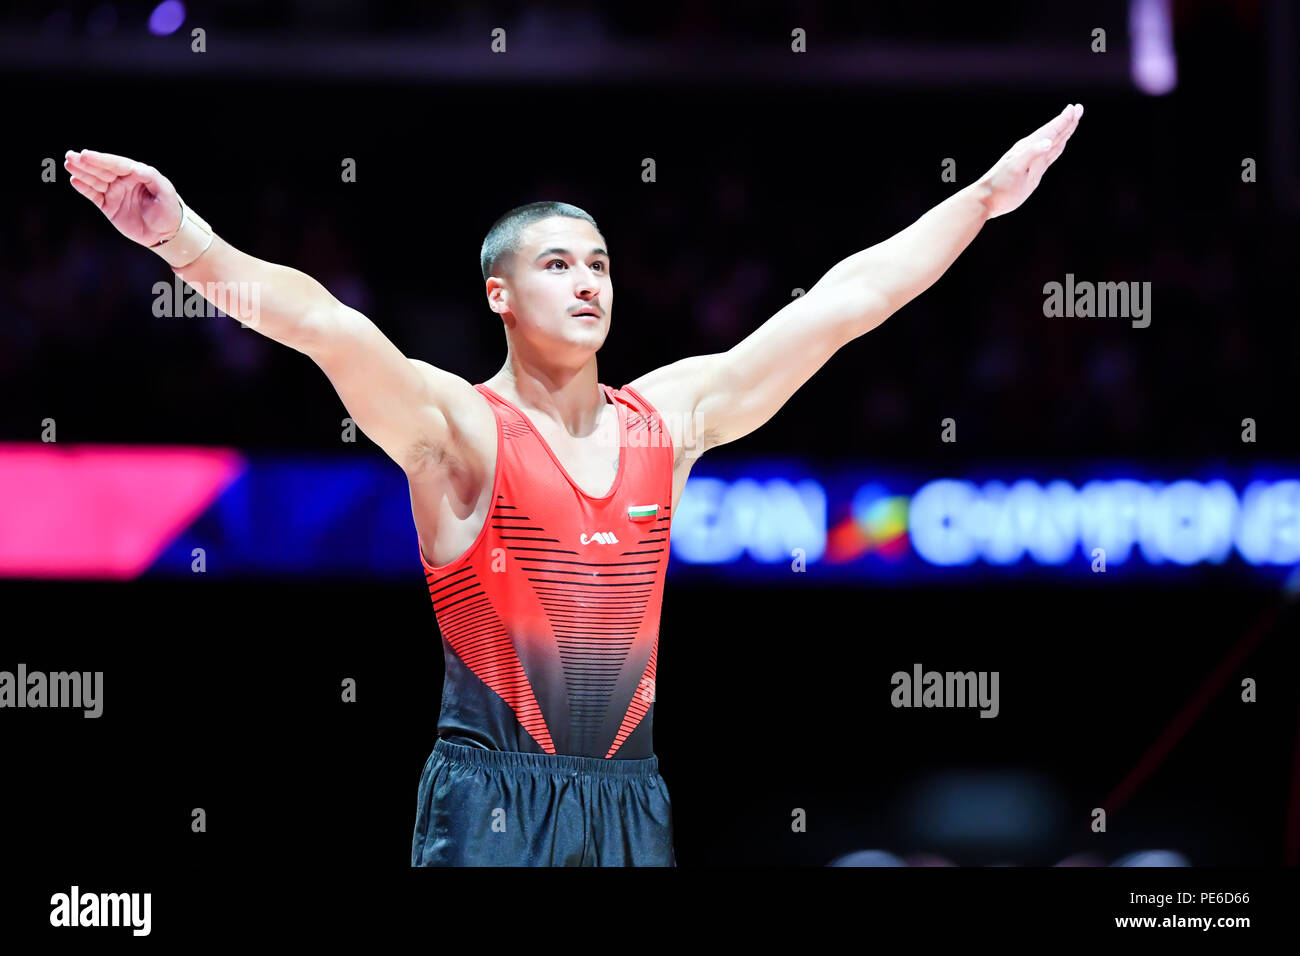 Glasgow, Scotland, UK. 12th August 2018. competes on the Vault in Men's Artistic Gymnastics Apparatus Finals during the European Championships Glasgow 2018 at The SSE Hydro on Sunday, 12  August 2018. GLASGOW SCOTLAND. Credit: Taka G Wu - Stock Image